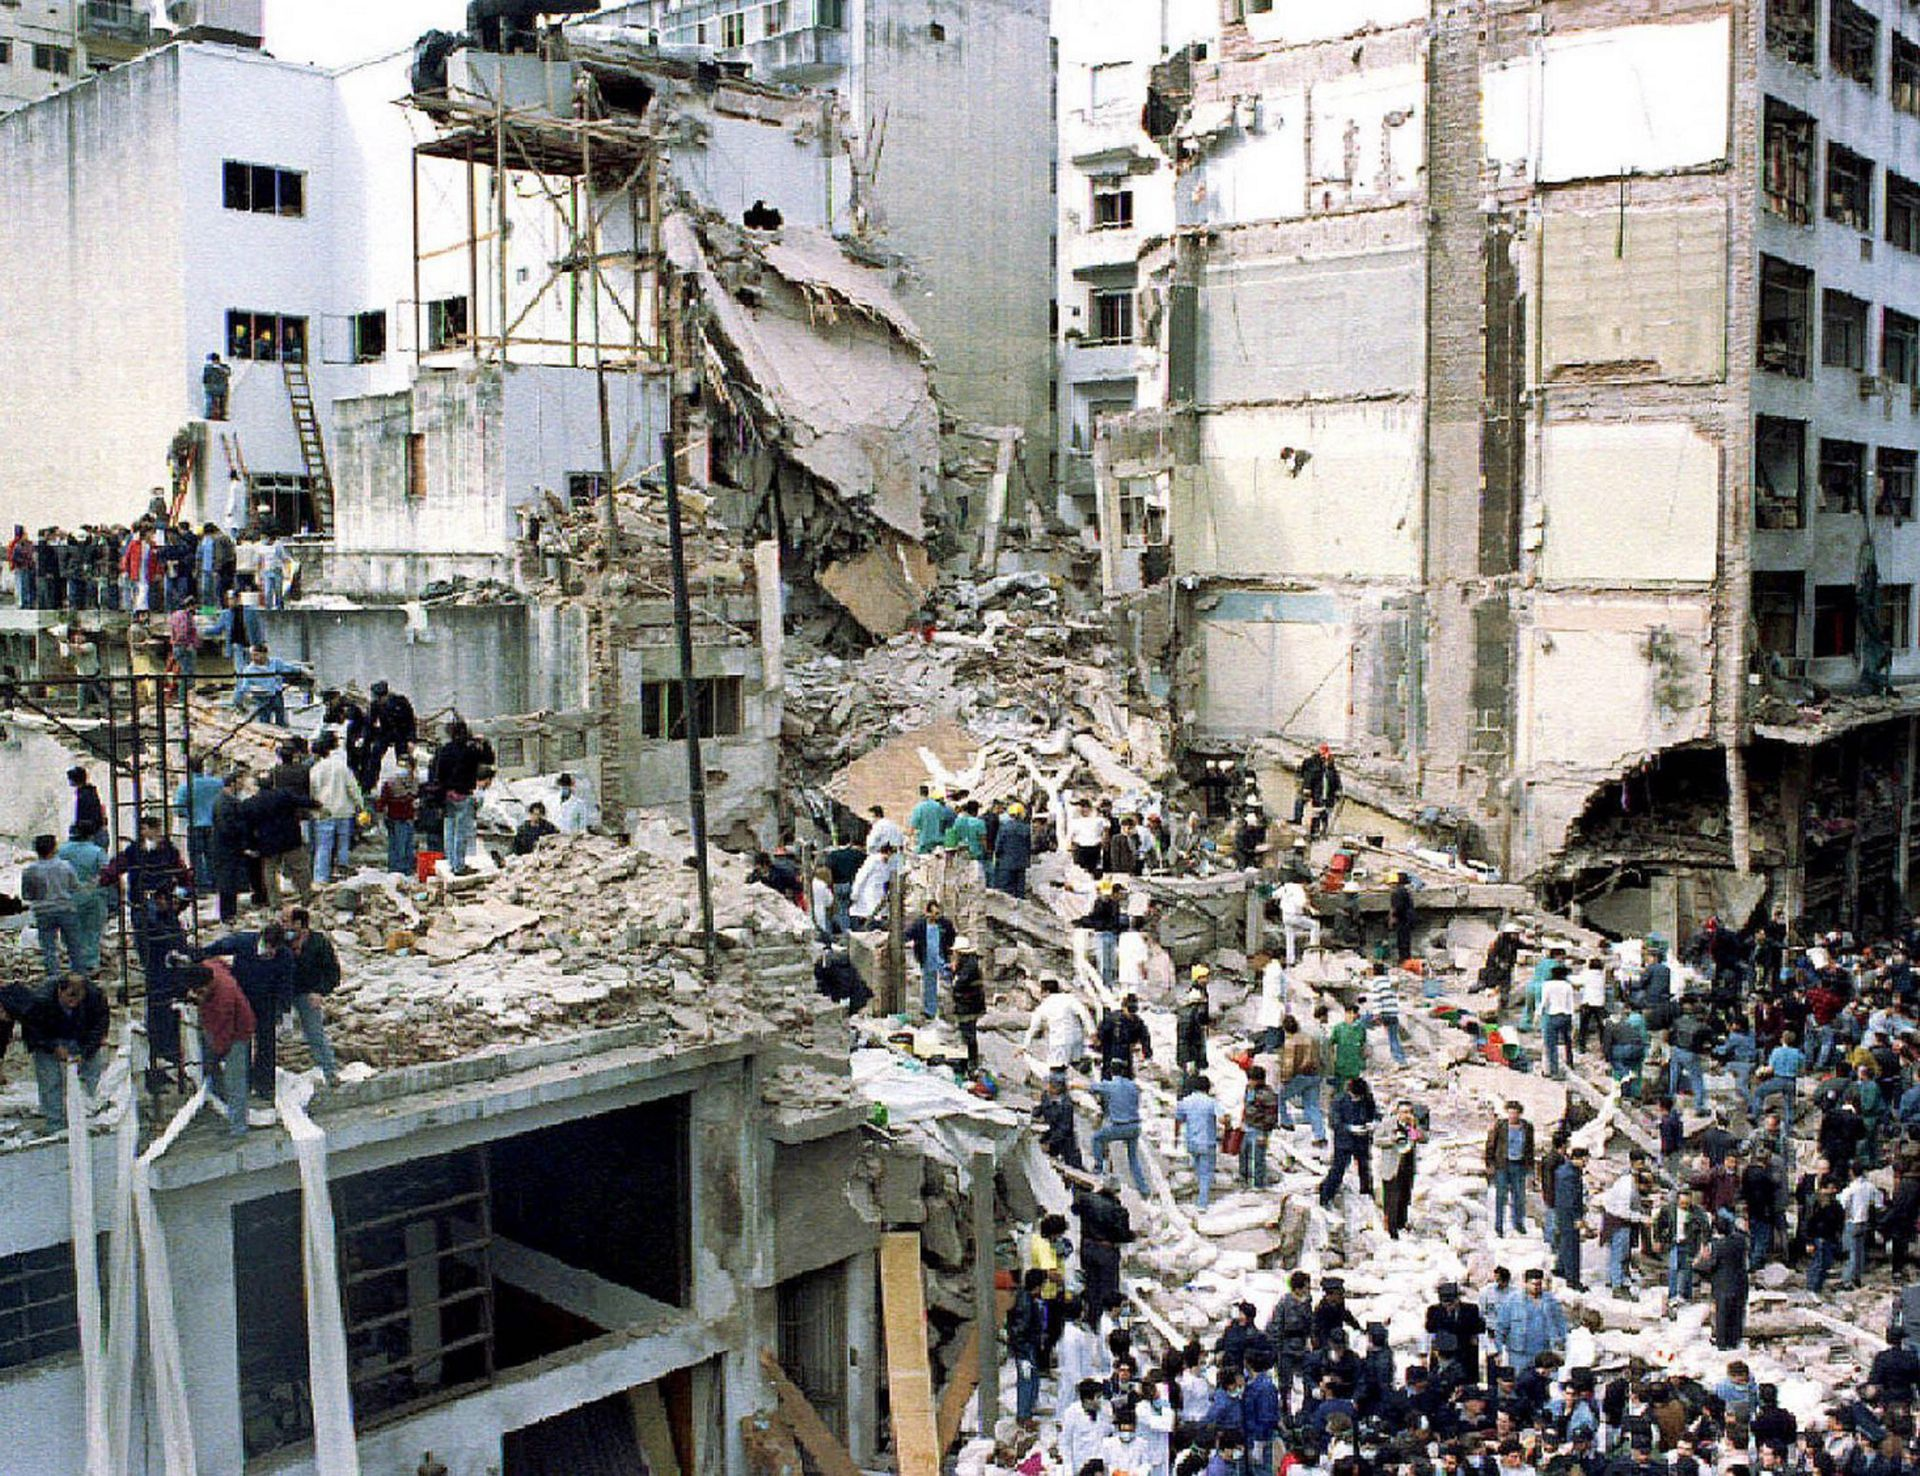 Image of the aftermath of the AMIA attack